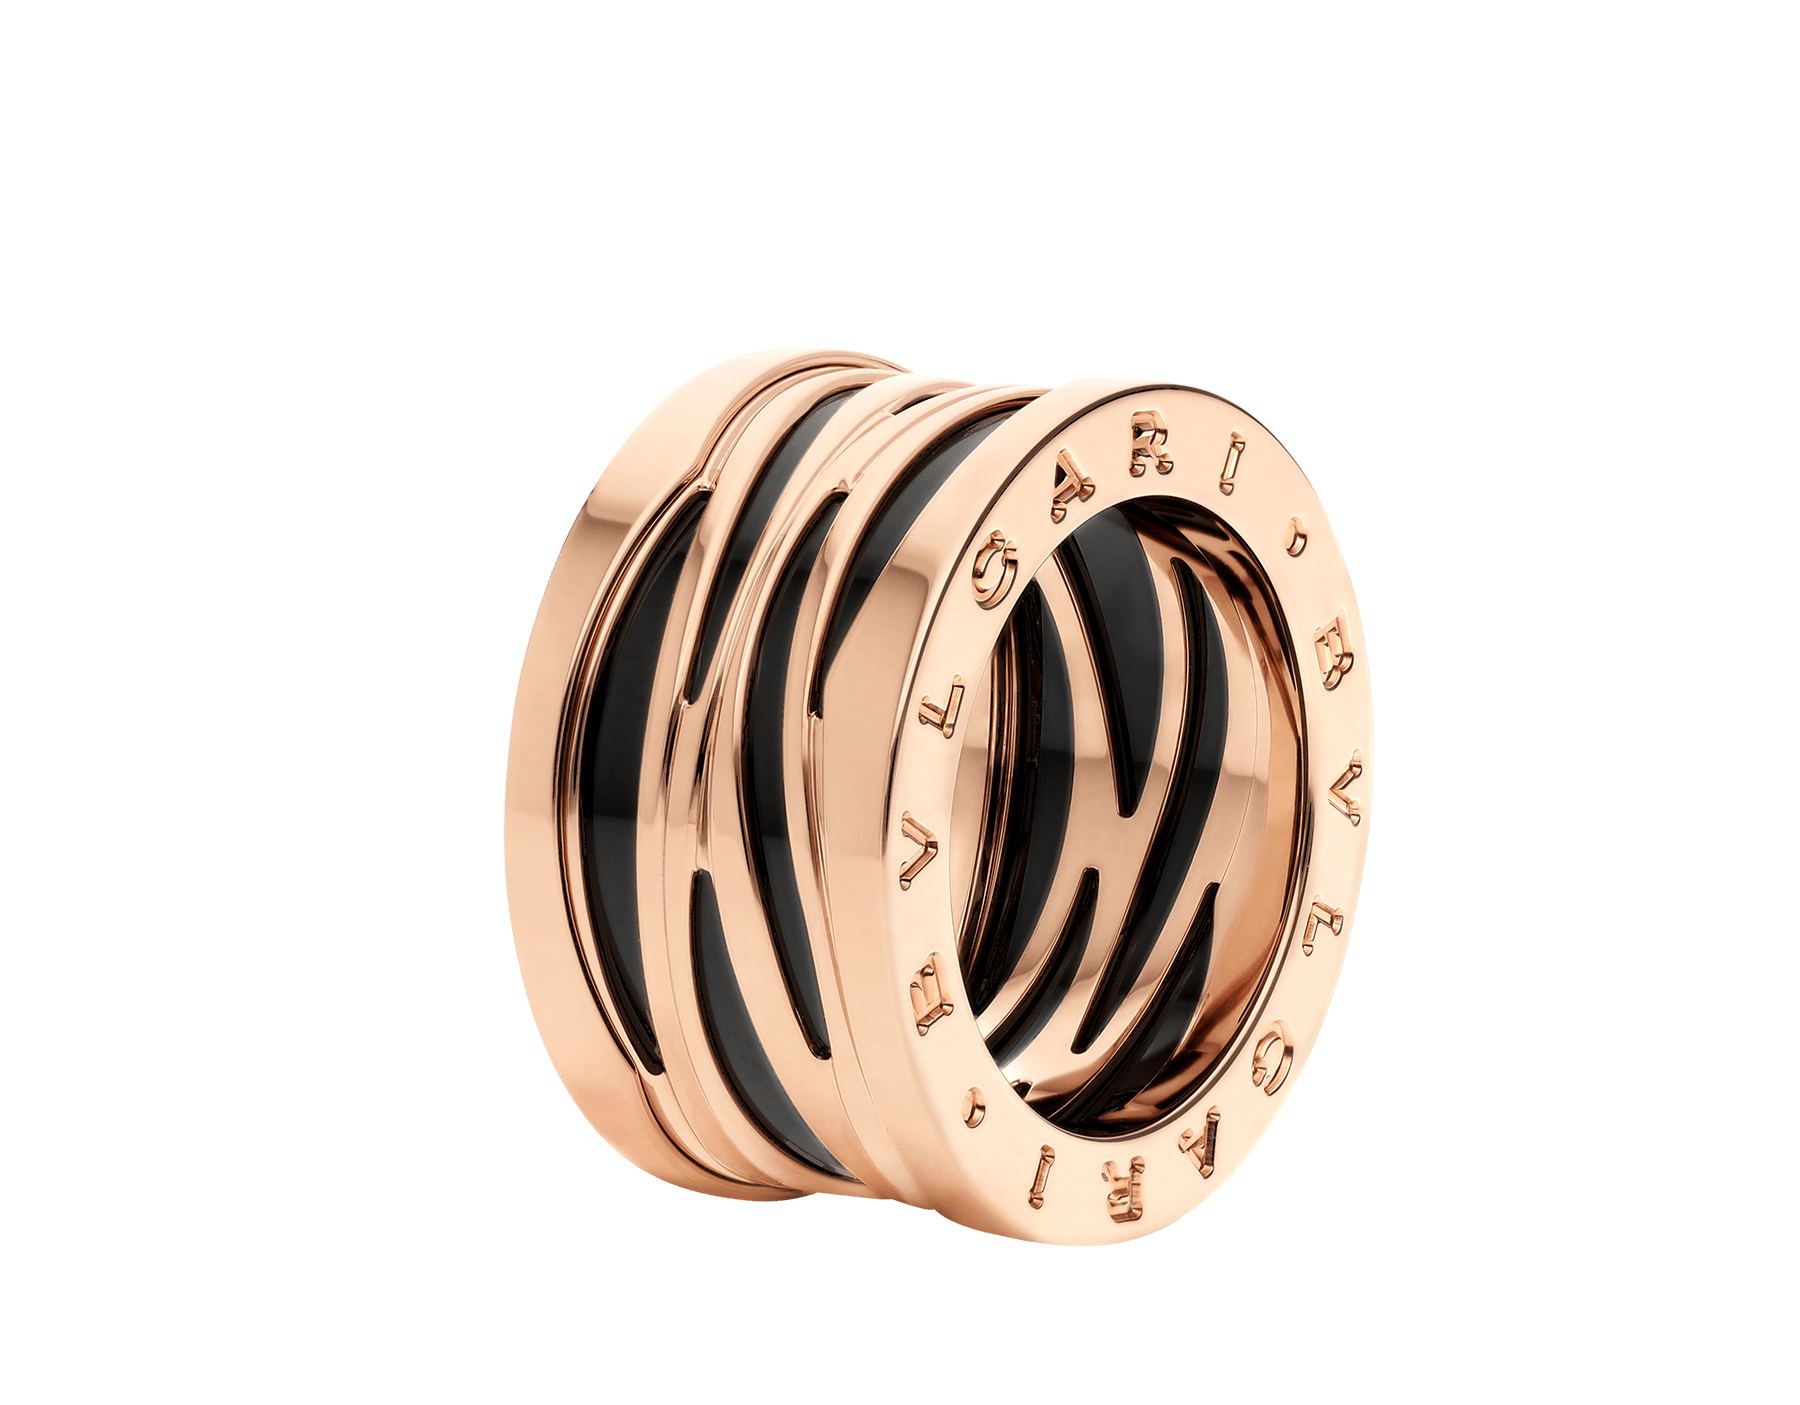 B.zero1 Design Legend four-band ring in 18 kt rose gold and black ceramic AN858575 image 1